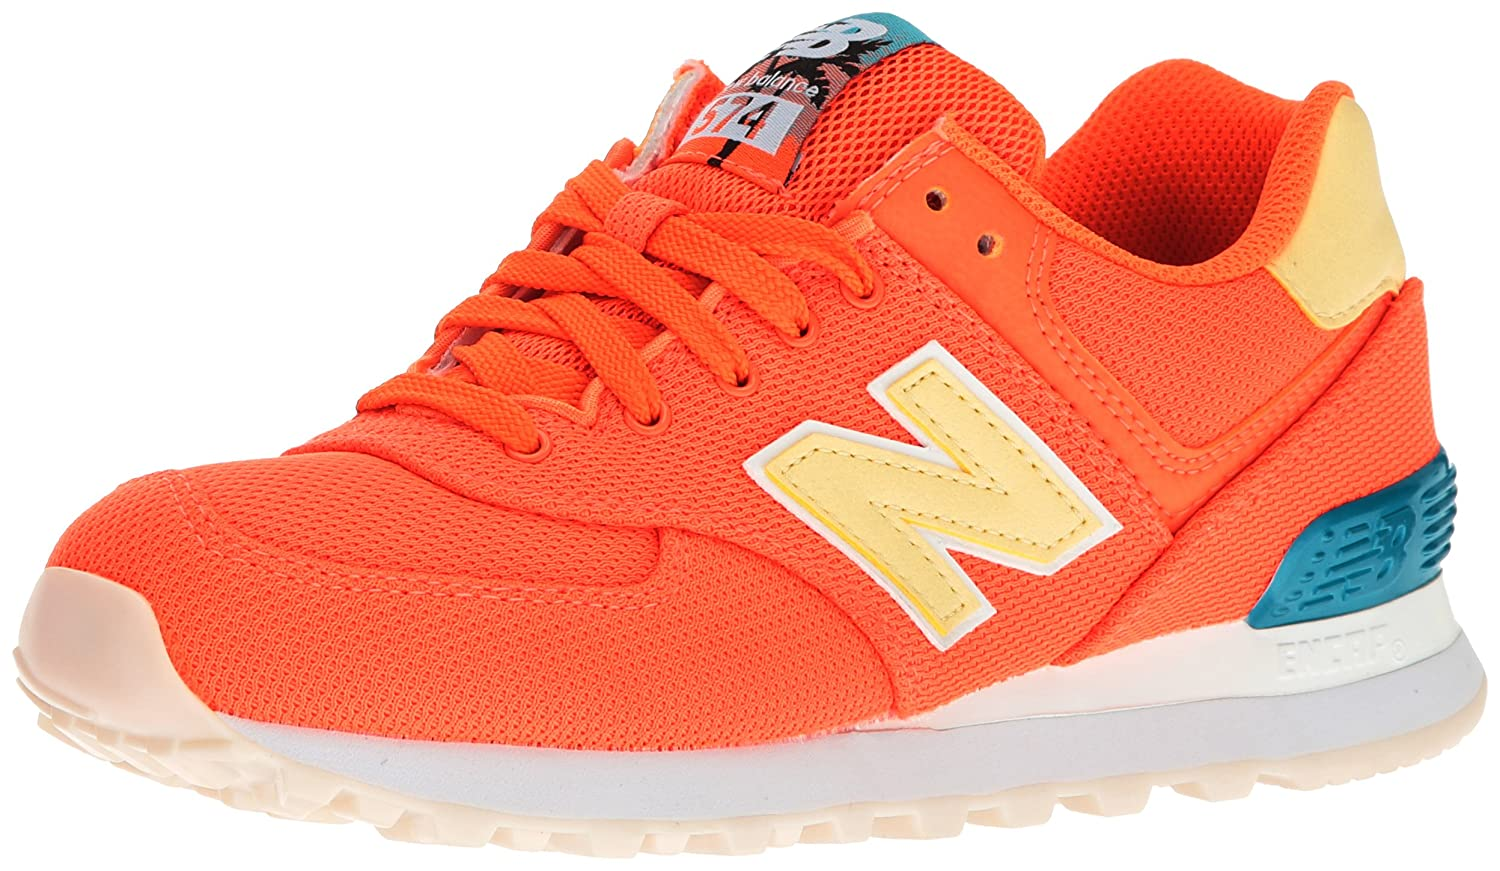 New Balance Orange B0786J2447 Wl574, New Bottes Classiques Femme Orange b30c548 - therethere.space